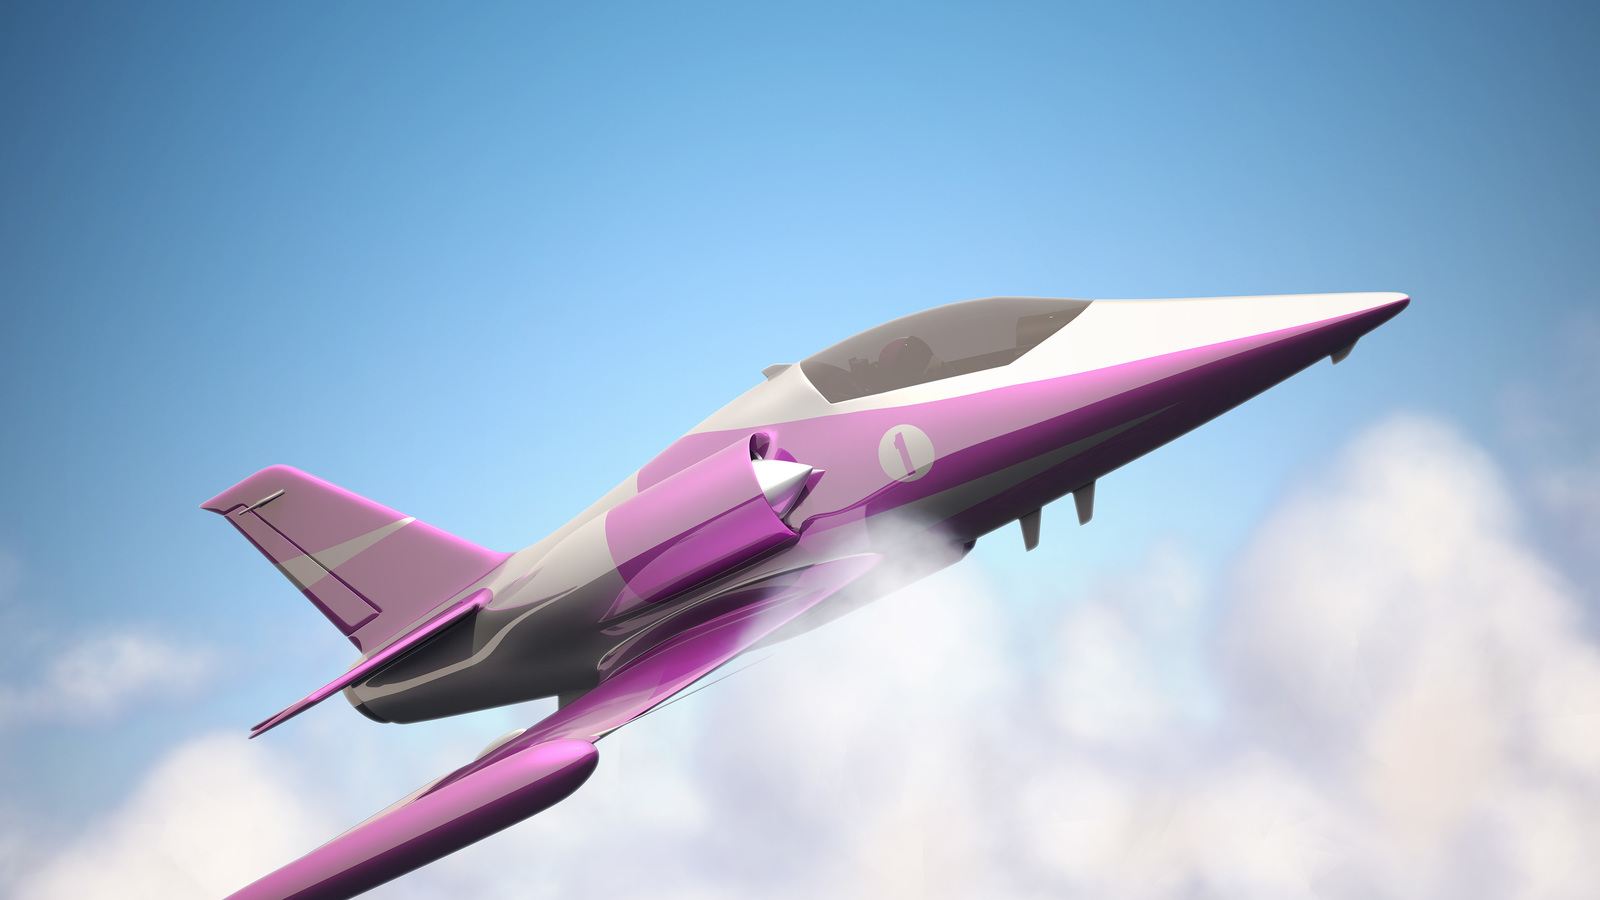 Frame of jet plane from Concentric animation